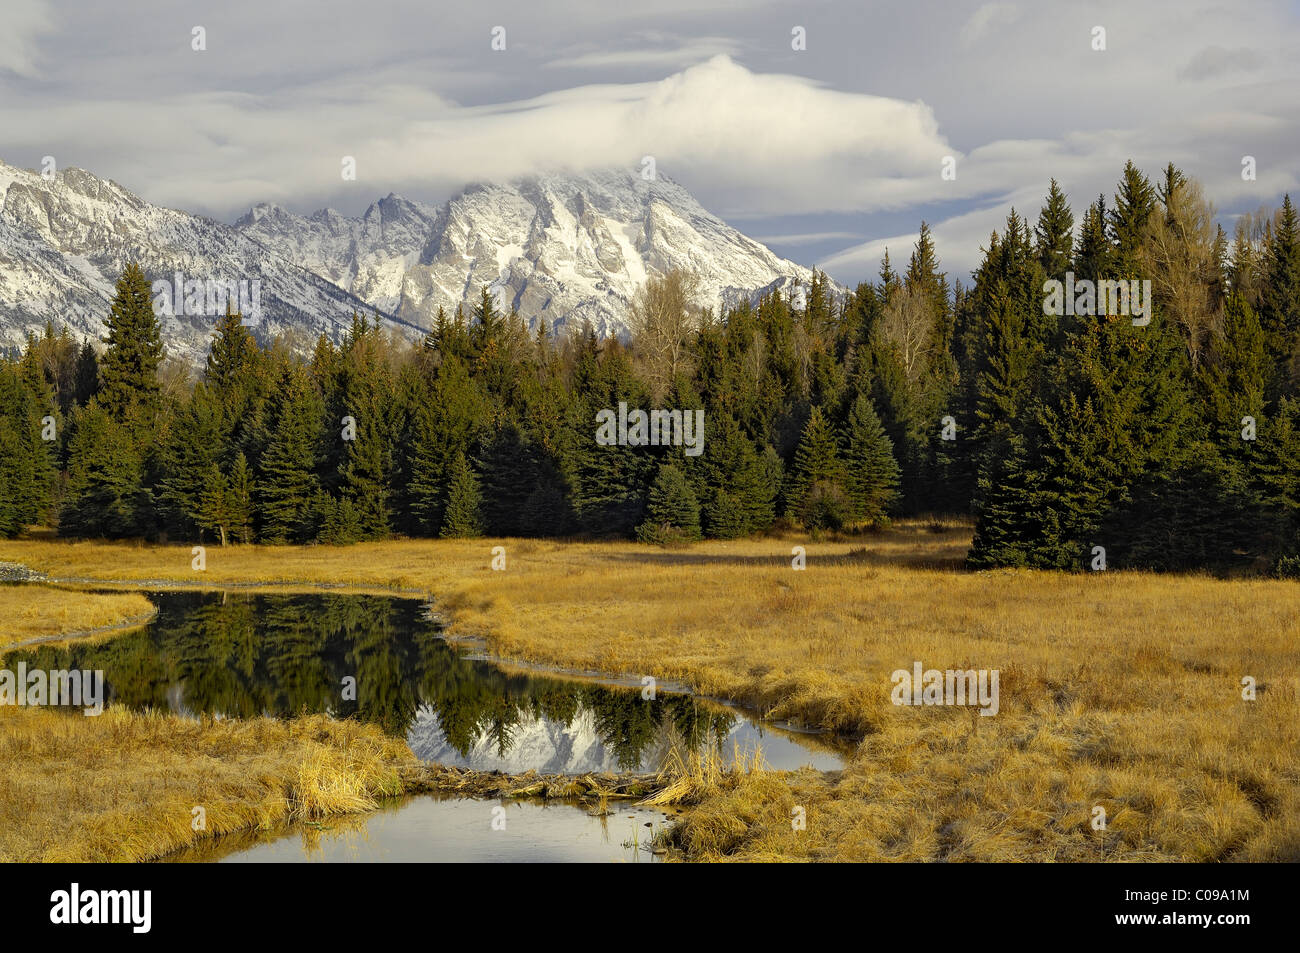 Morning reflection in the Rocky Mountains - Stock Image